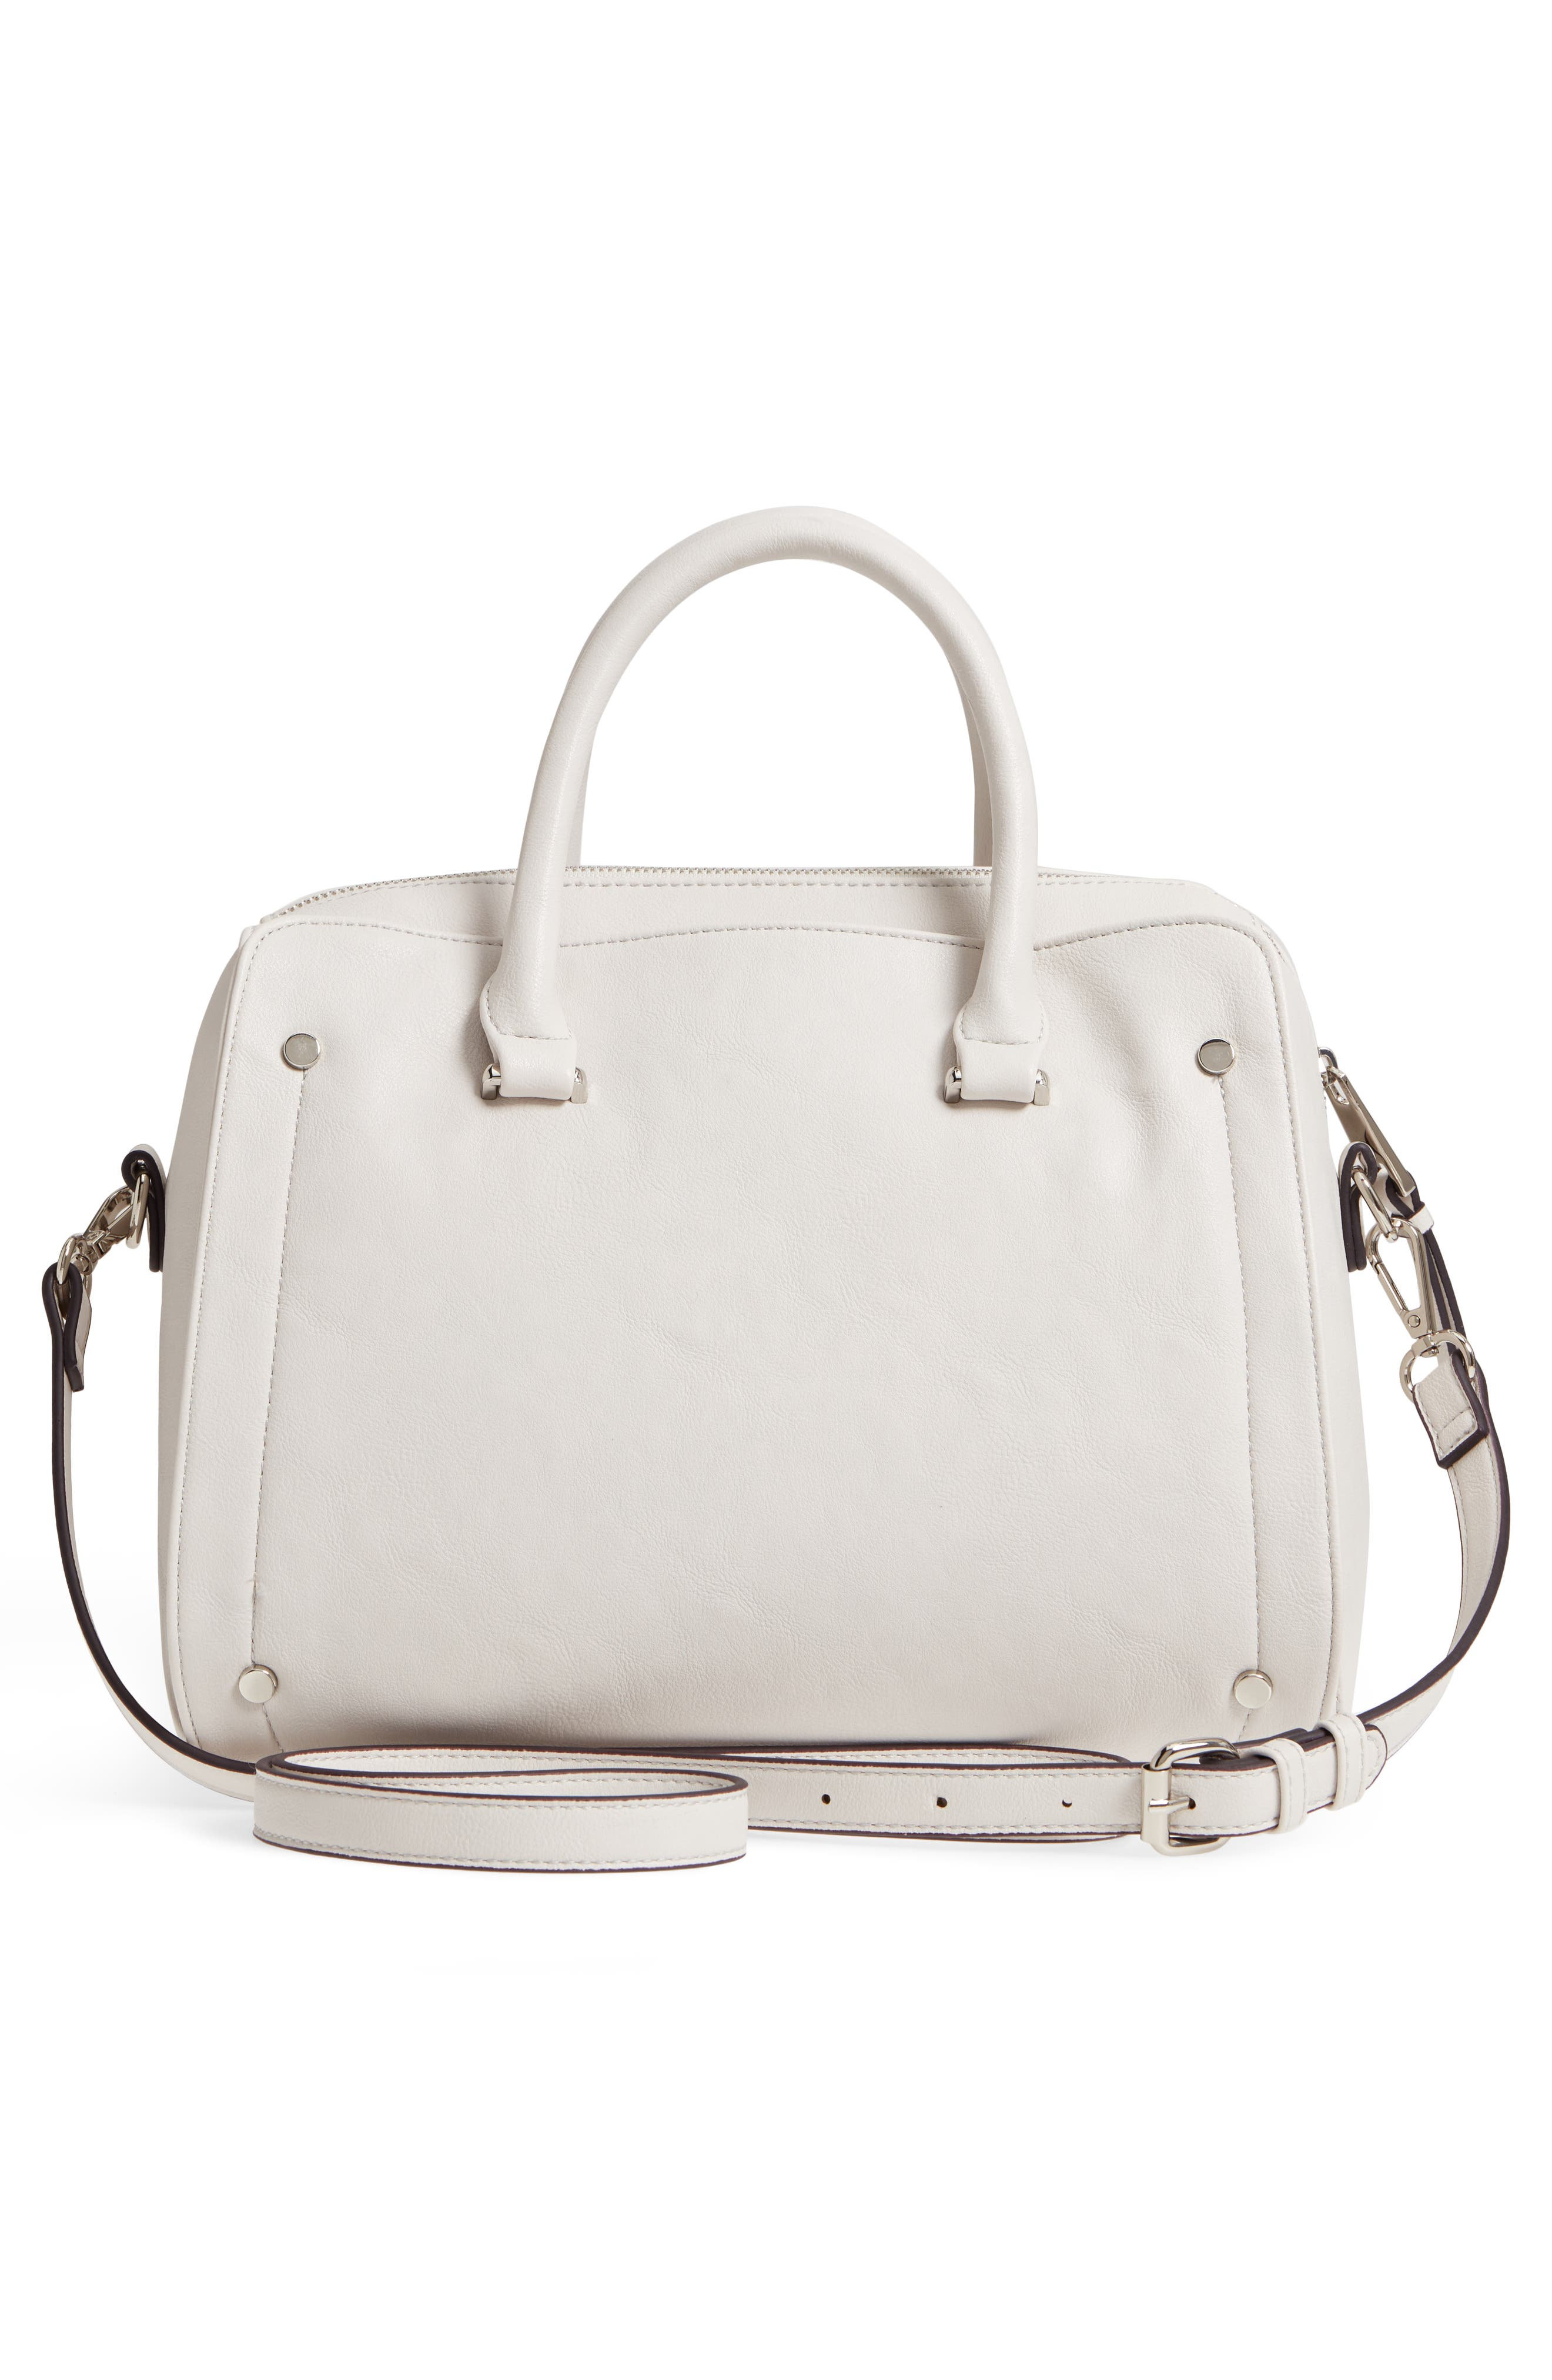 Speedy Studded Faux Leather Satchel,                             Alternate thumbnail 3, color,                             101